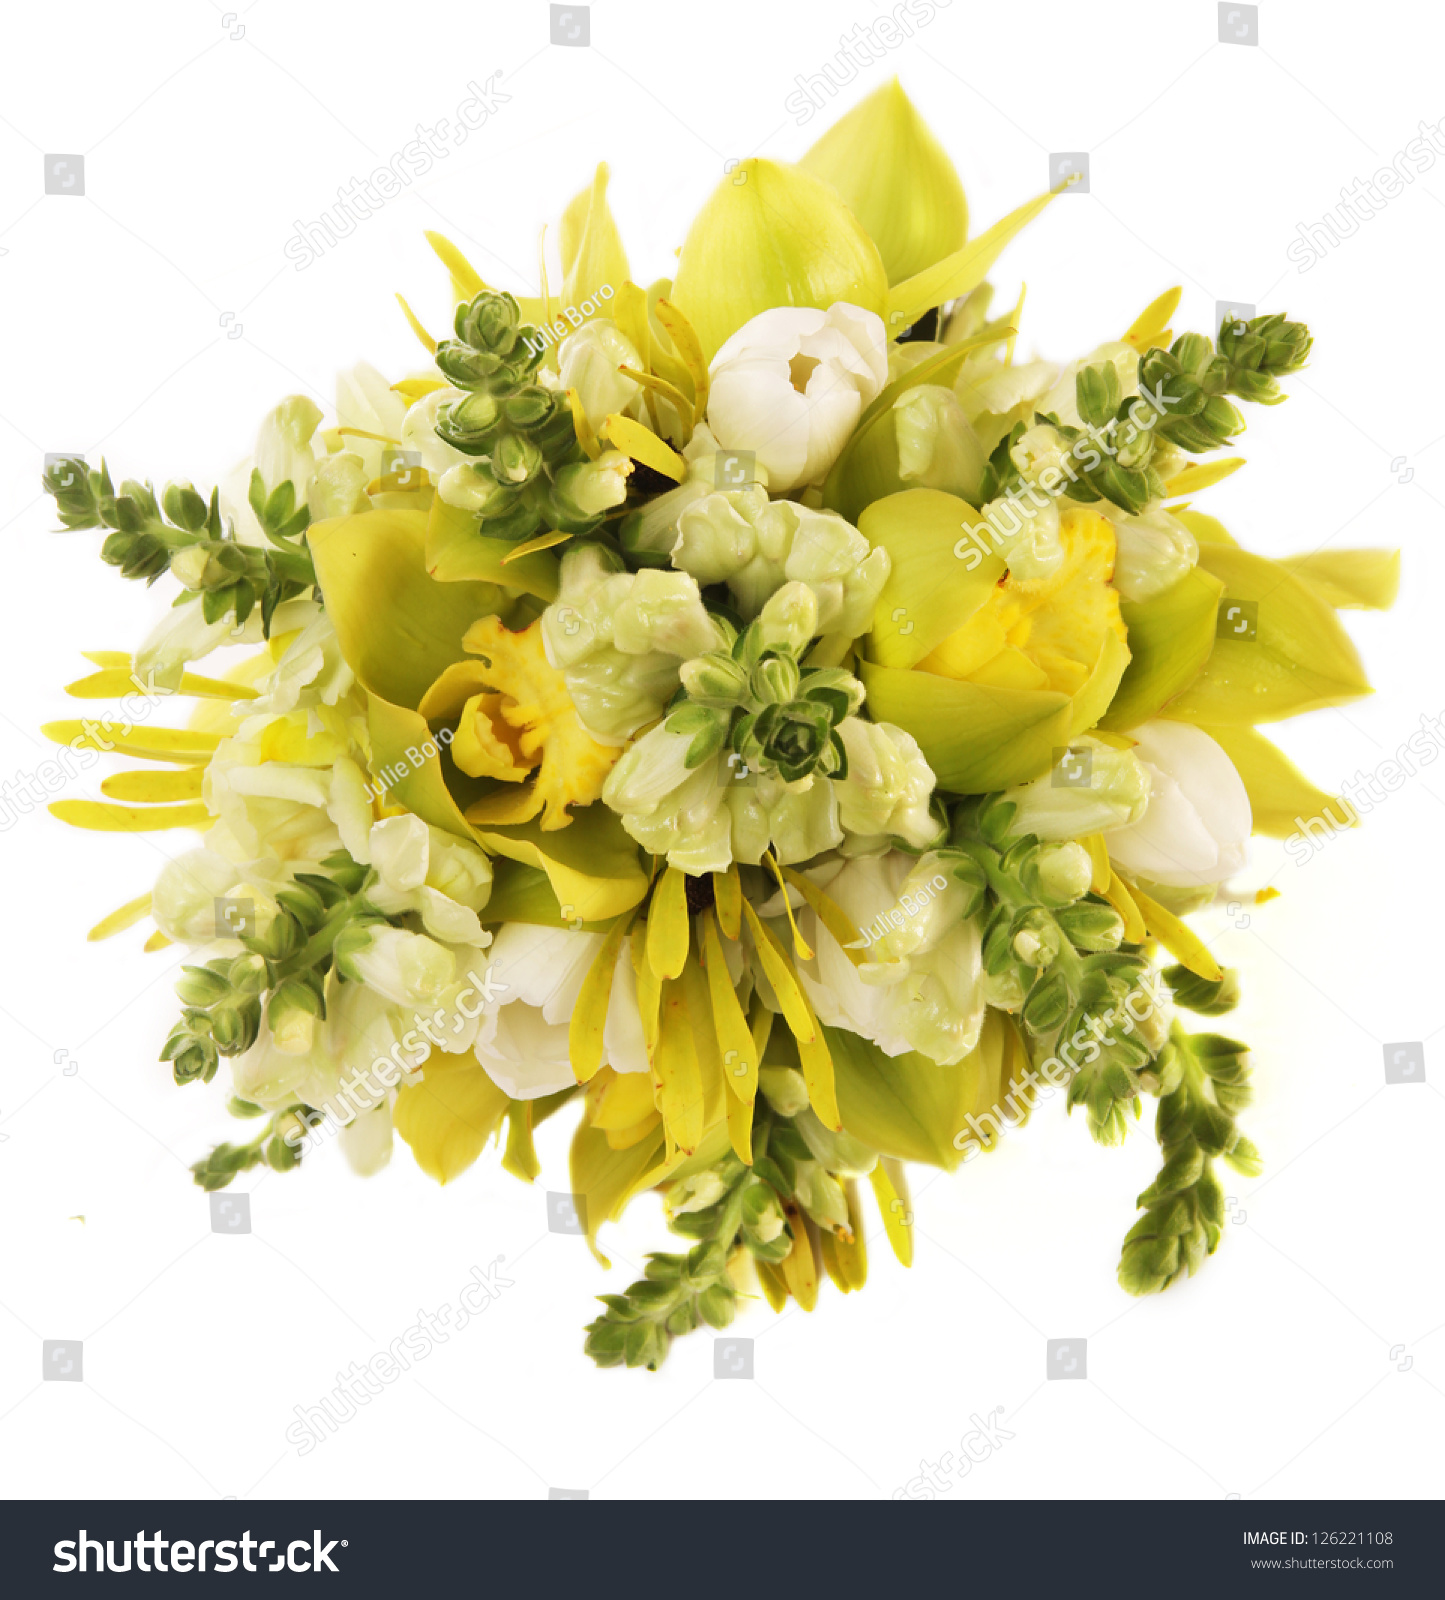 Green Orchid Flowers Bouquet Stock Photo (Edit Now) 126221108 ...